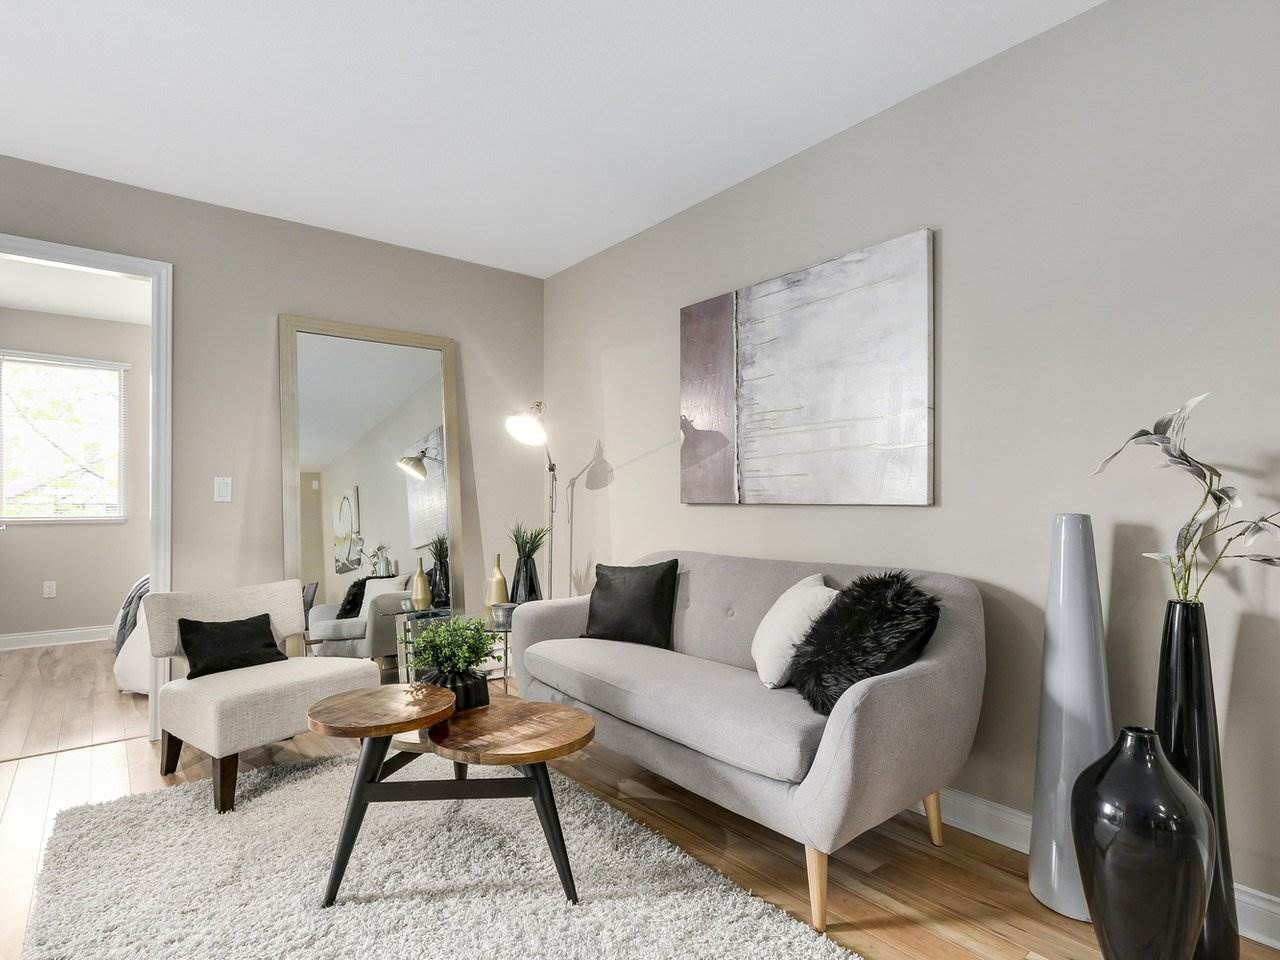 """Main Photo: 209 688 E 16TH Avenue in Vancouver: Fraser VE Condo for sale in """"VINTAGE EASTSIDE"""" (Vancouver East)  : MLS®# R2168610"""